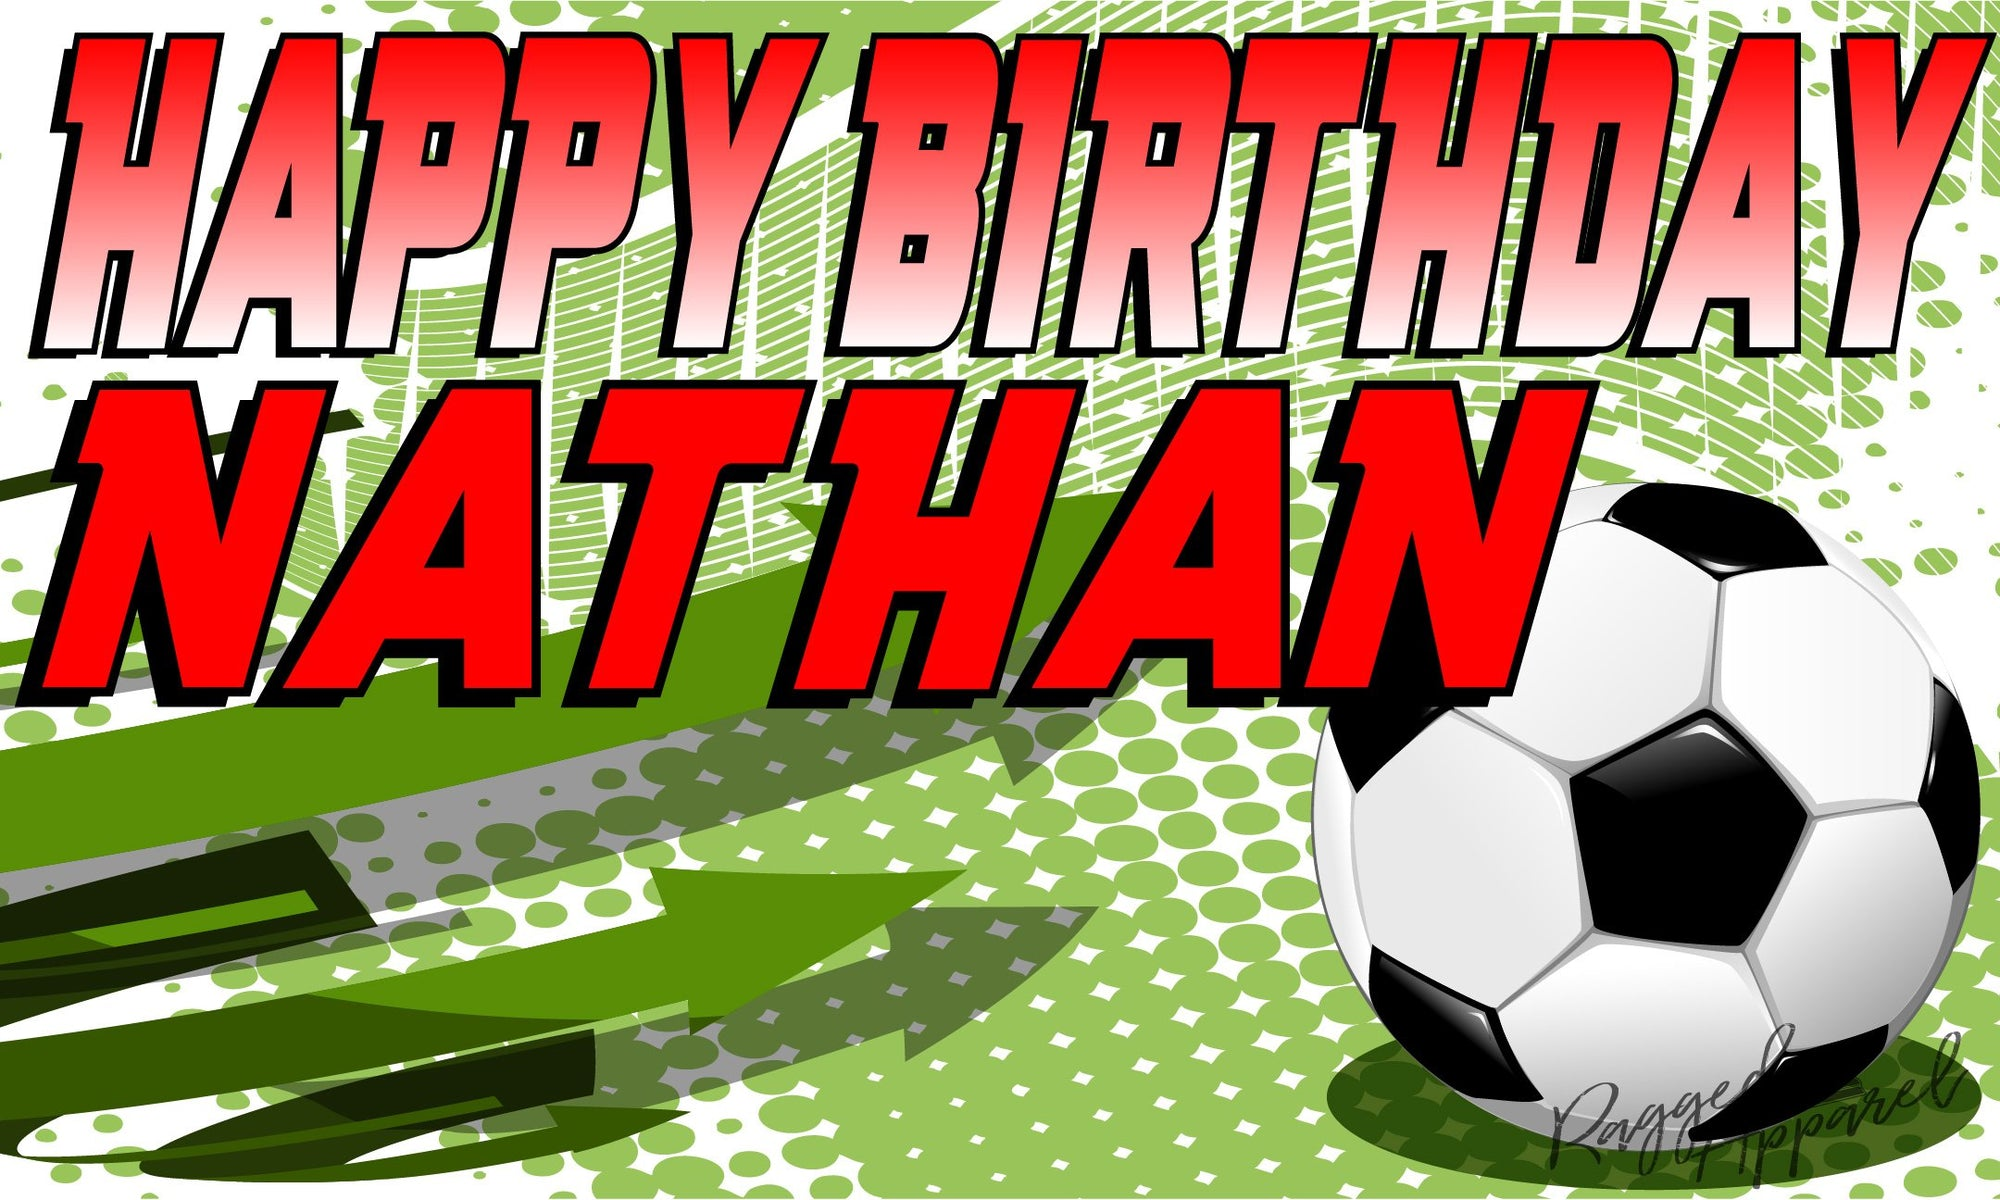 Kids Personalized Soccer Birthday Banner - Ragged Apparel Screen Printing and Signs - www.nmshirts.com